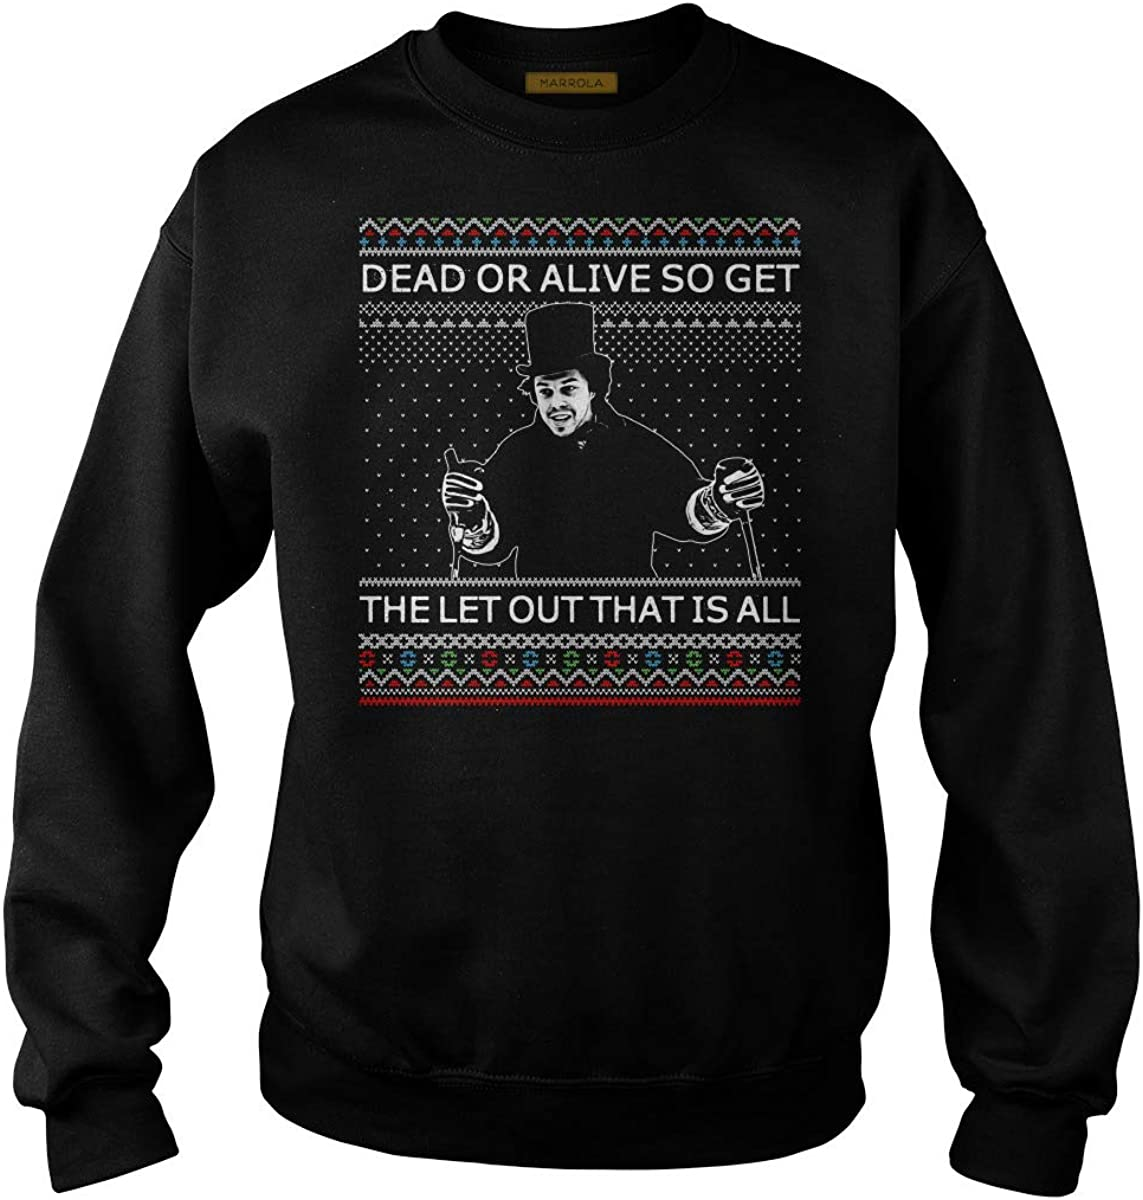 Marrola Or Alive So Get The Let Out That is All Ugly Christmas T-Shirt